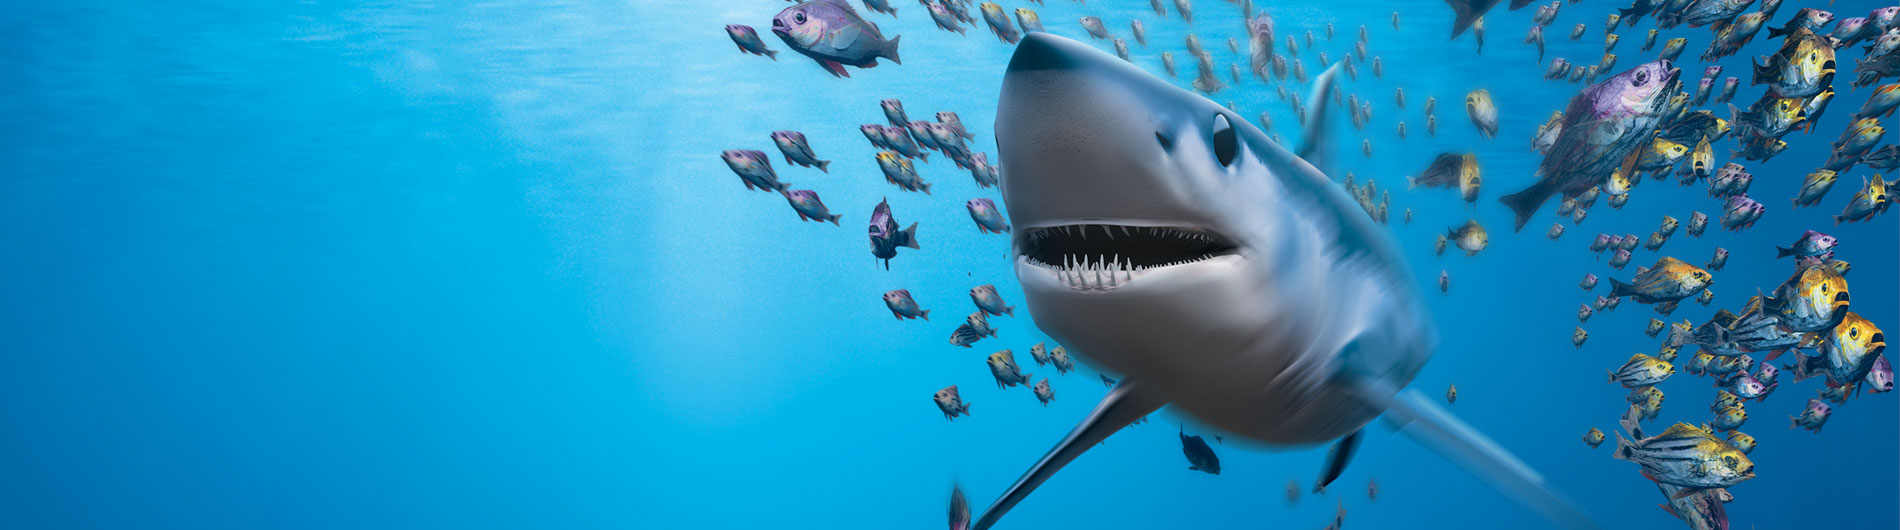 Shark swimming in a school of fish